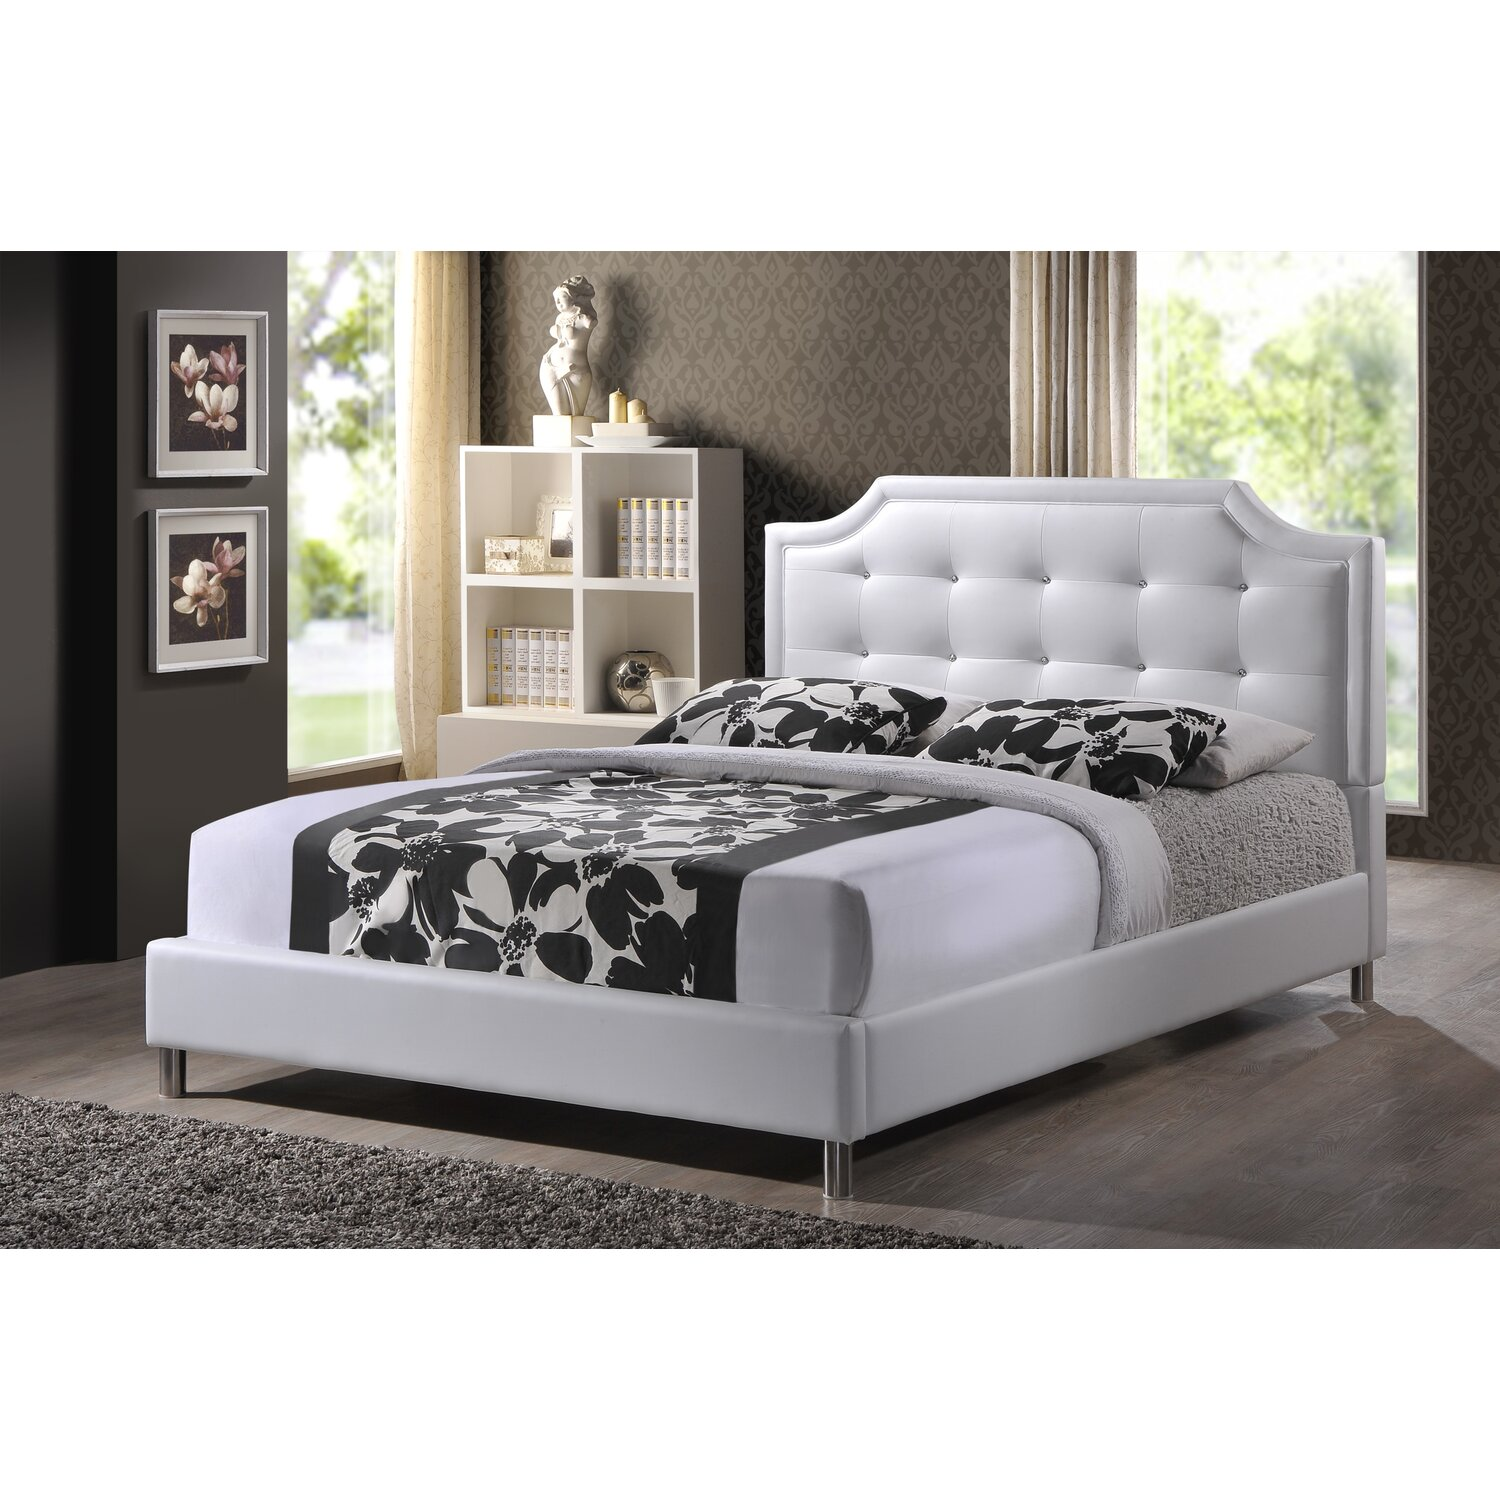 "Price Comparisons Patriot  US0458-IFPKG FULL Electric Bed With 1633 Inner Spring Mattress And Full Rails, 1 Each, SS & cheapest grafco convoluted foam mattress pad 3"" queen 56 x 76 x 3 qty: 1 eggcrate  Brown"